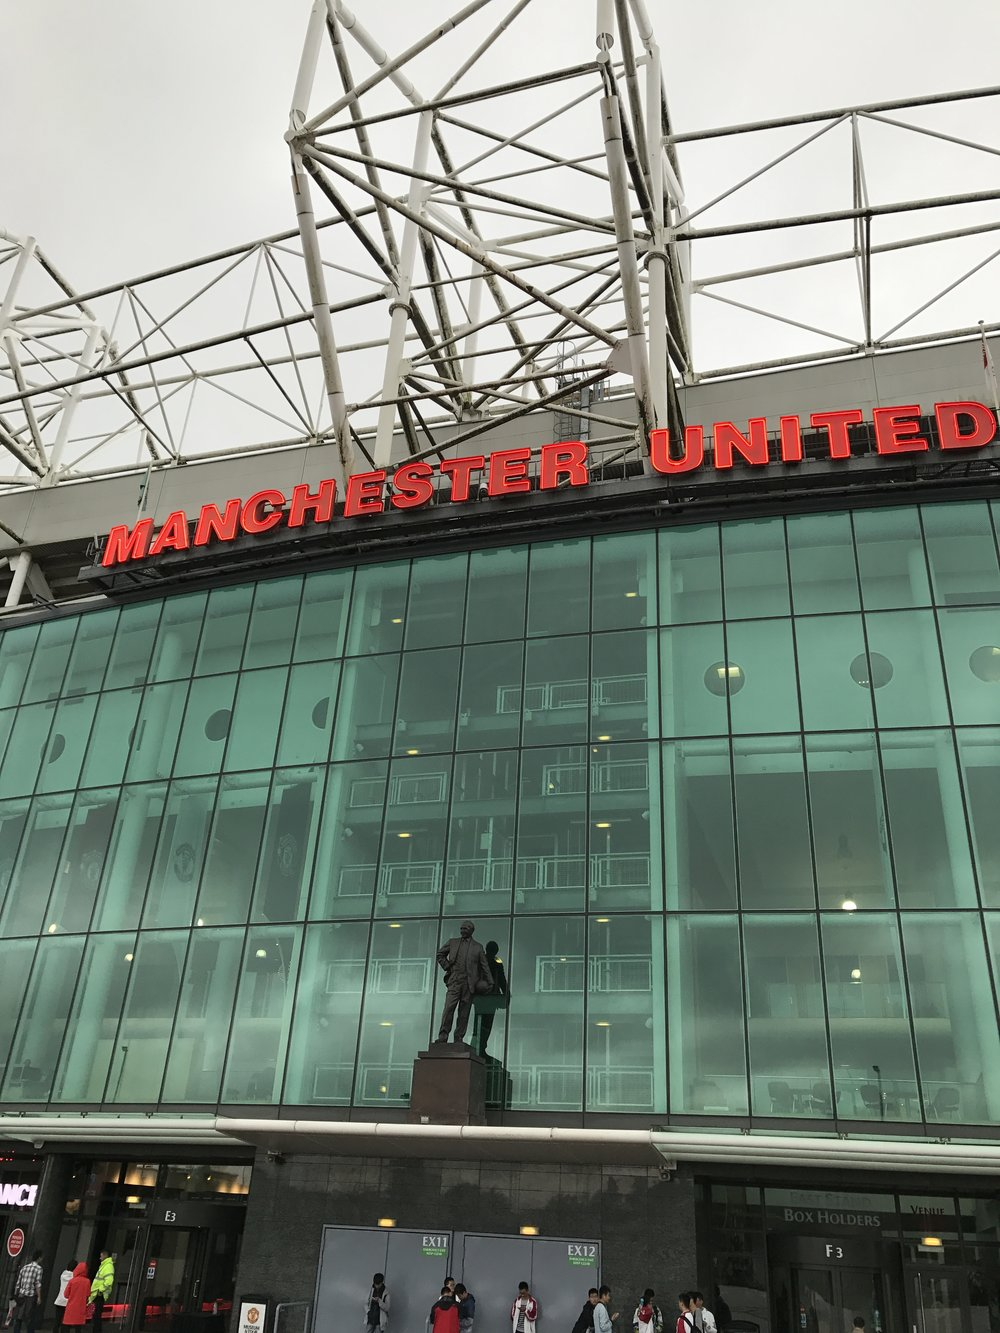 Old Trafford. The Theatre of Dreams.